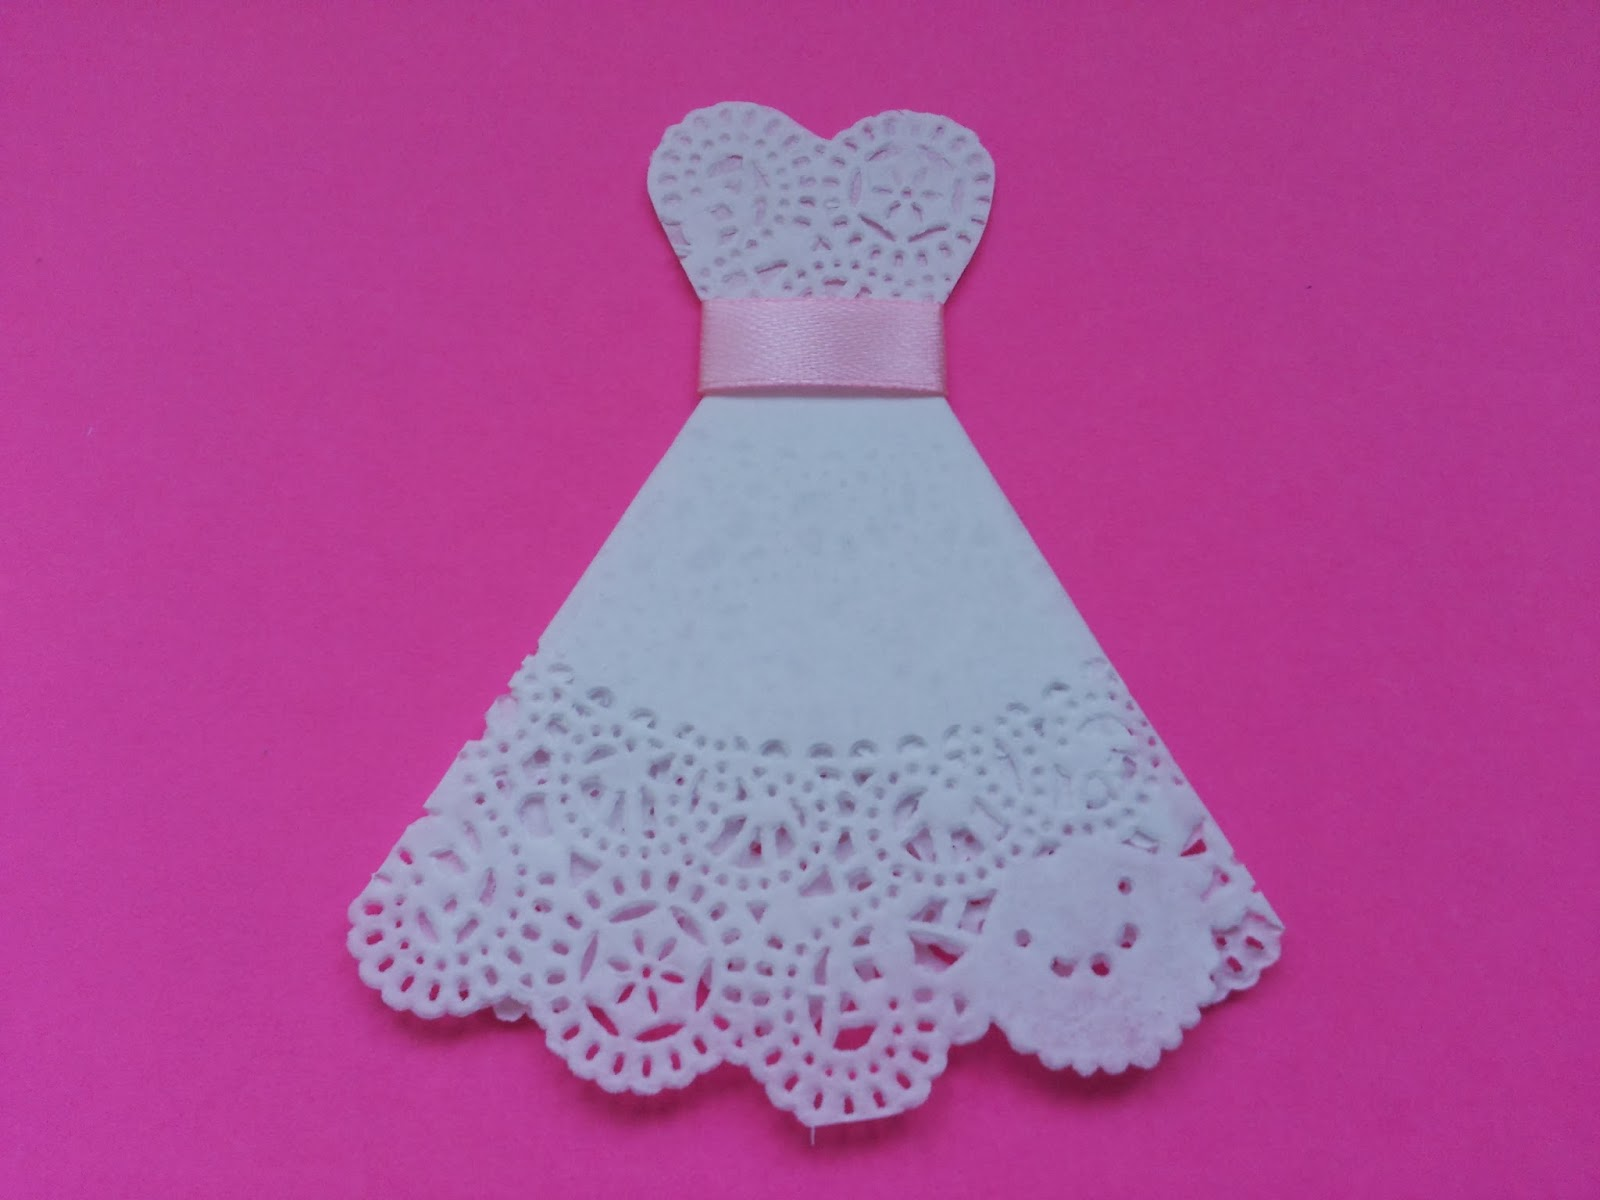 real diy    how to make wedding dress from doily paper